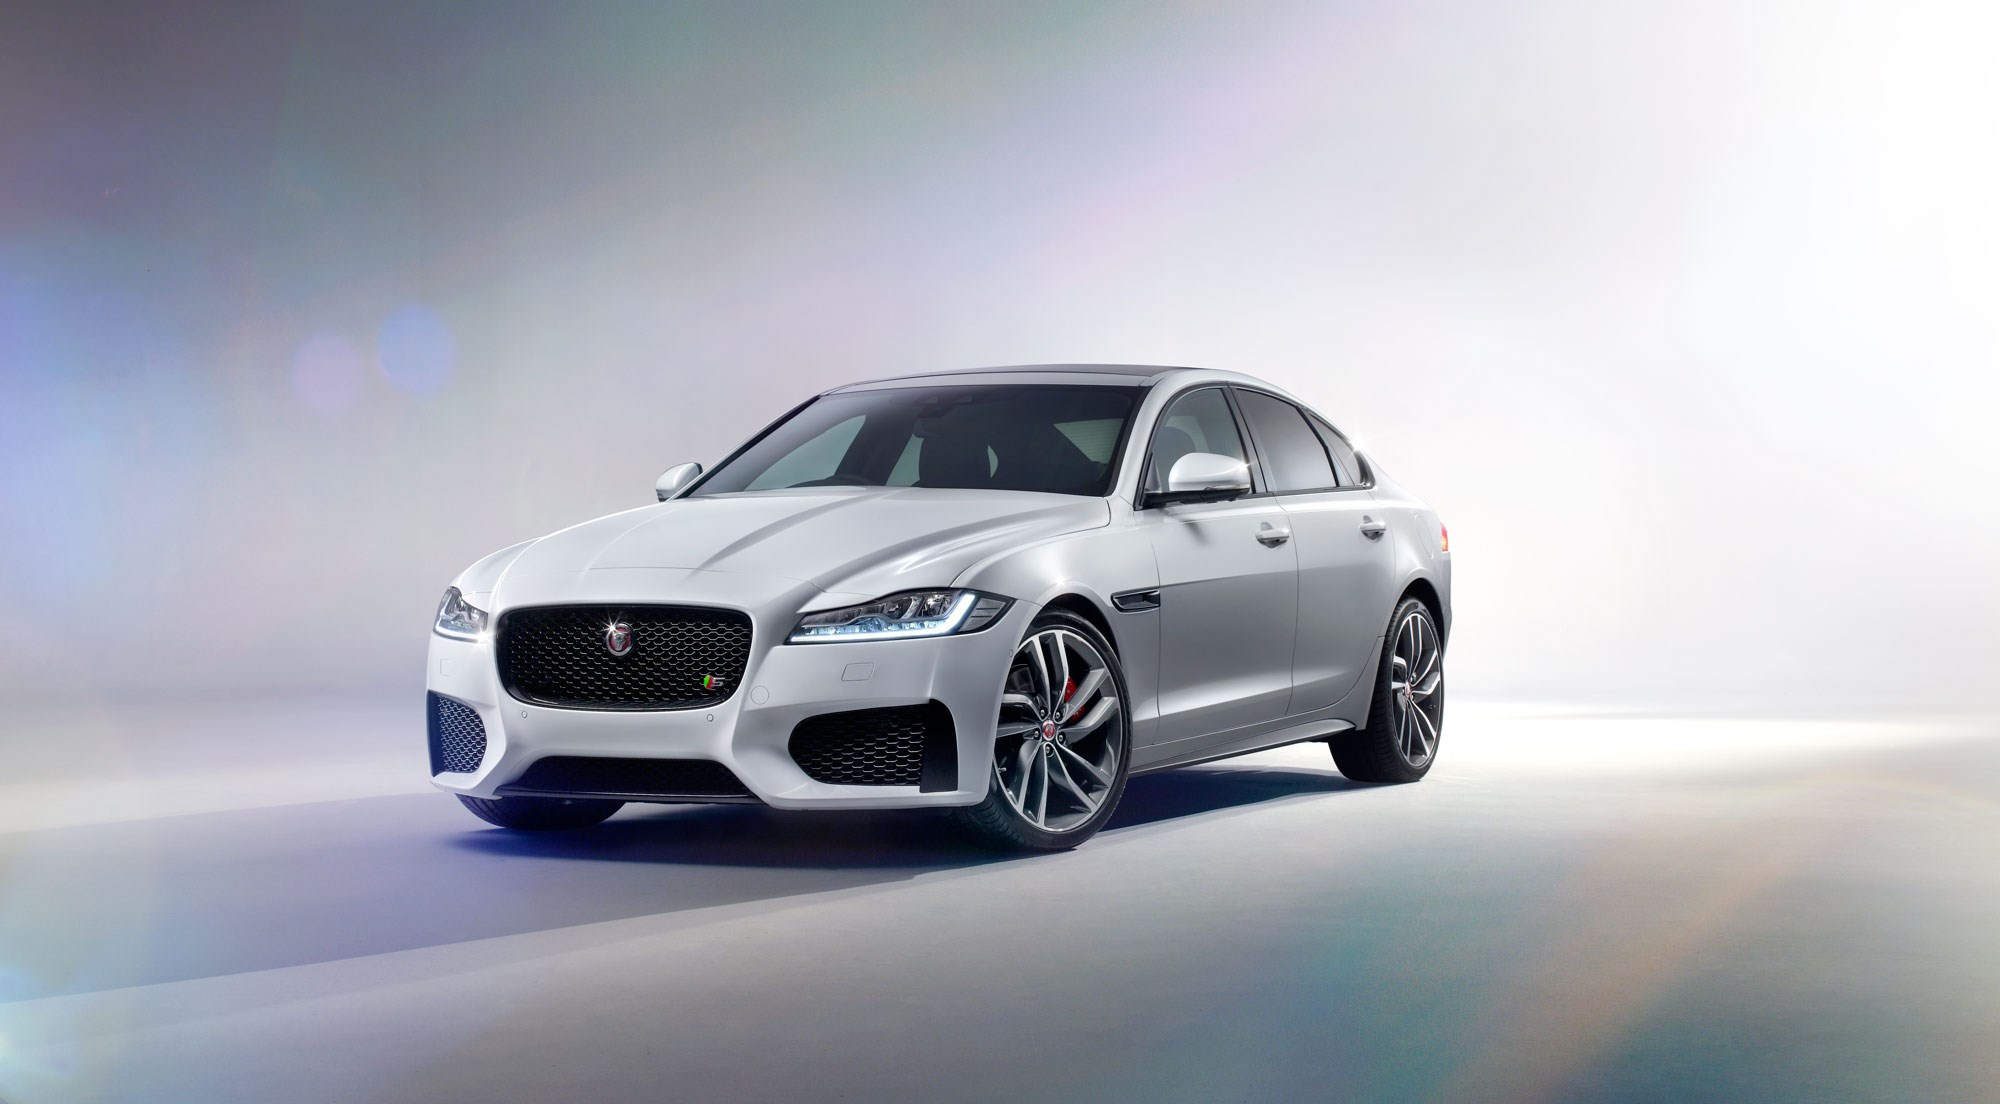 new release jaguar carNew Jaguar XF 2015 revealed honey I inflated the XE by CAR